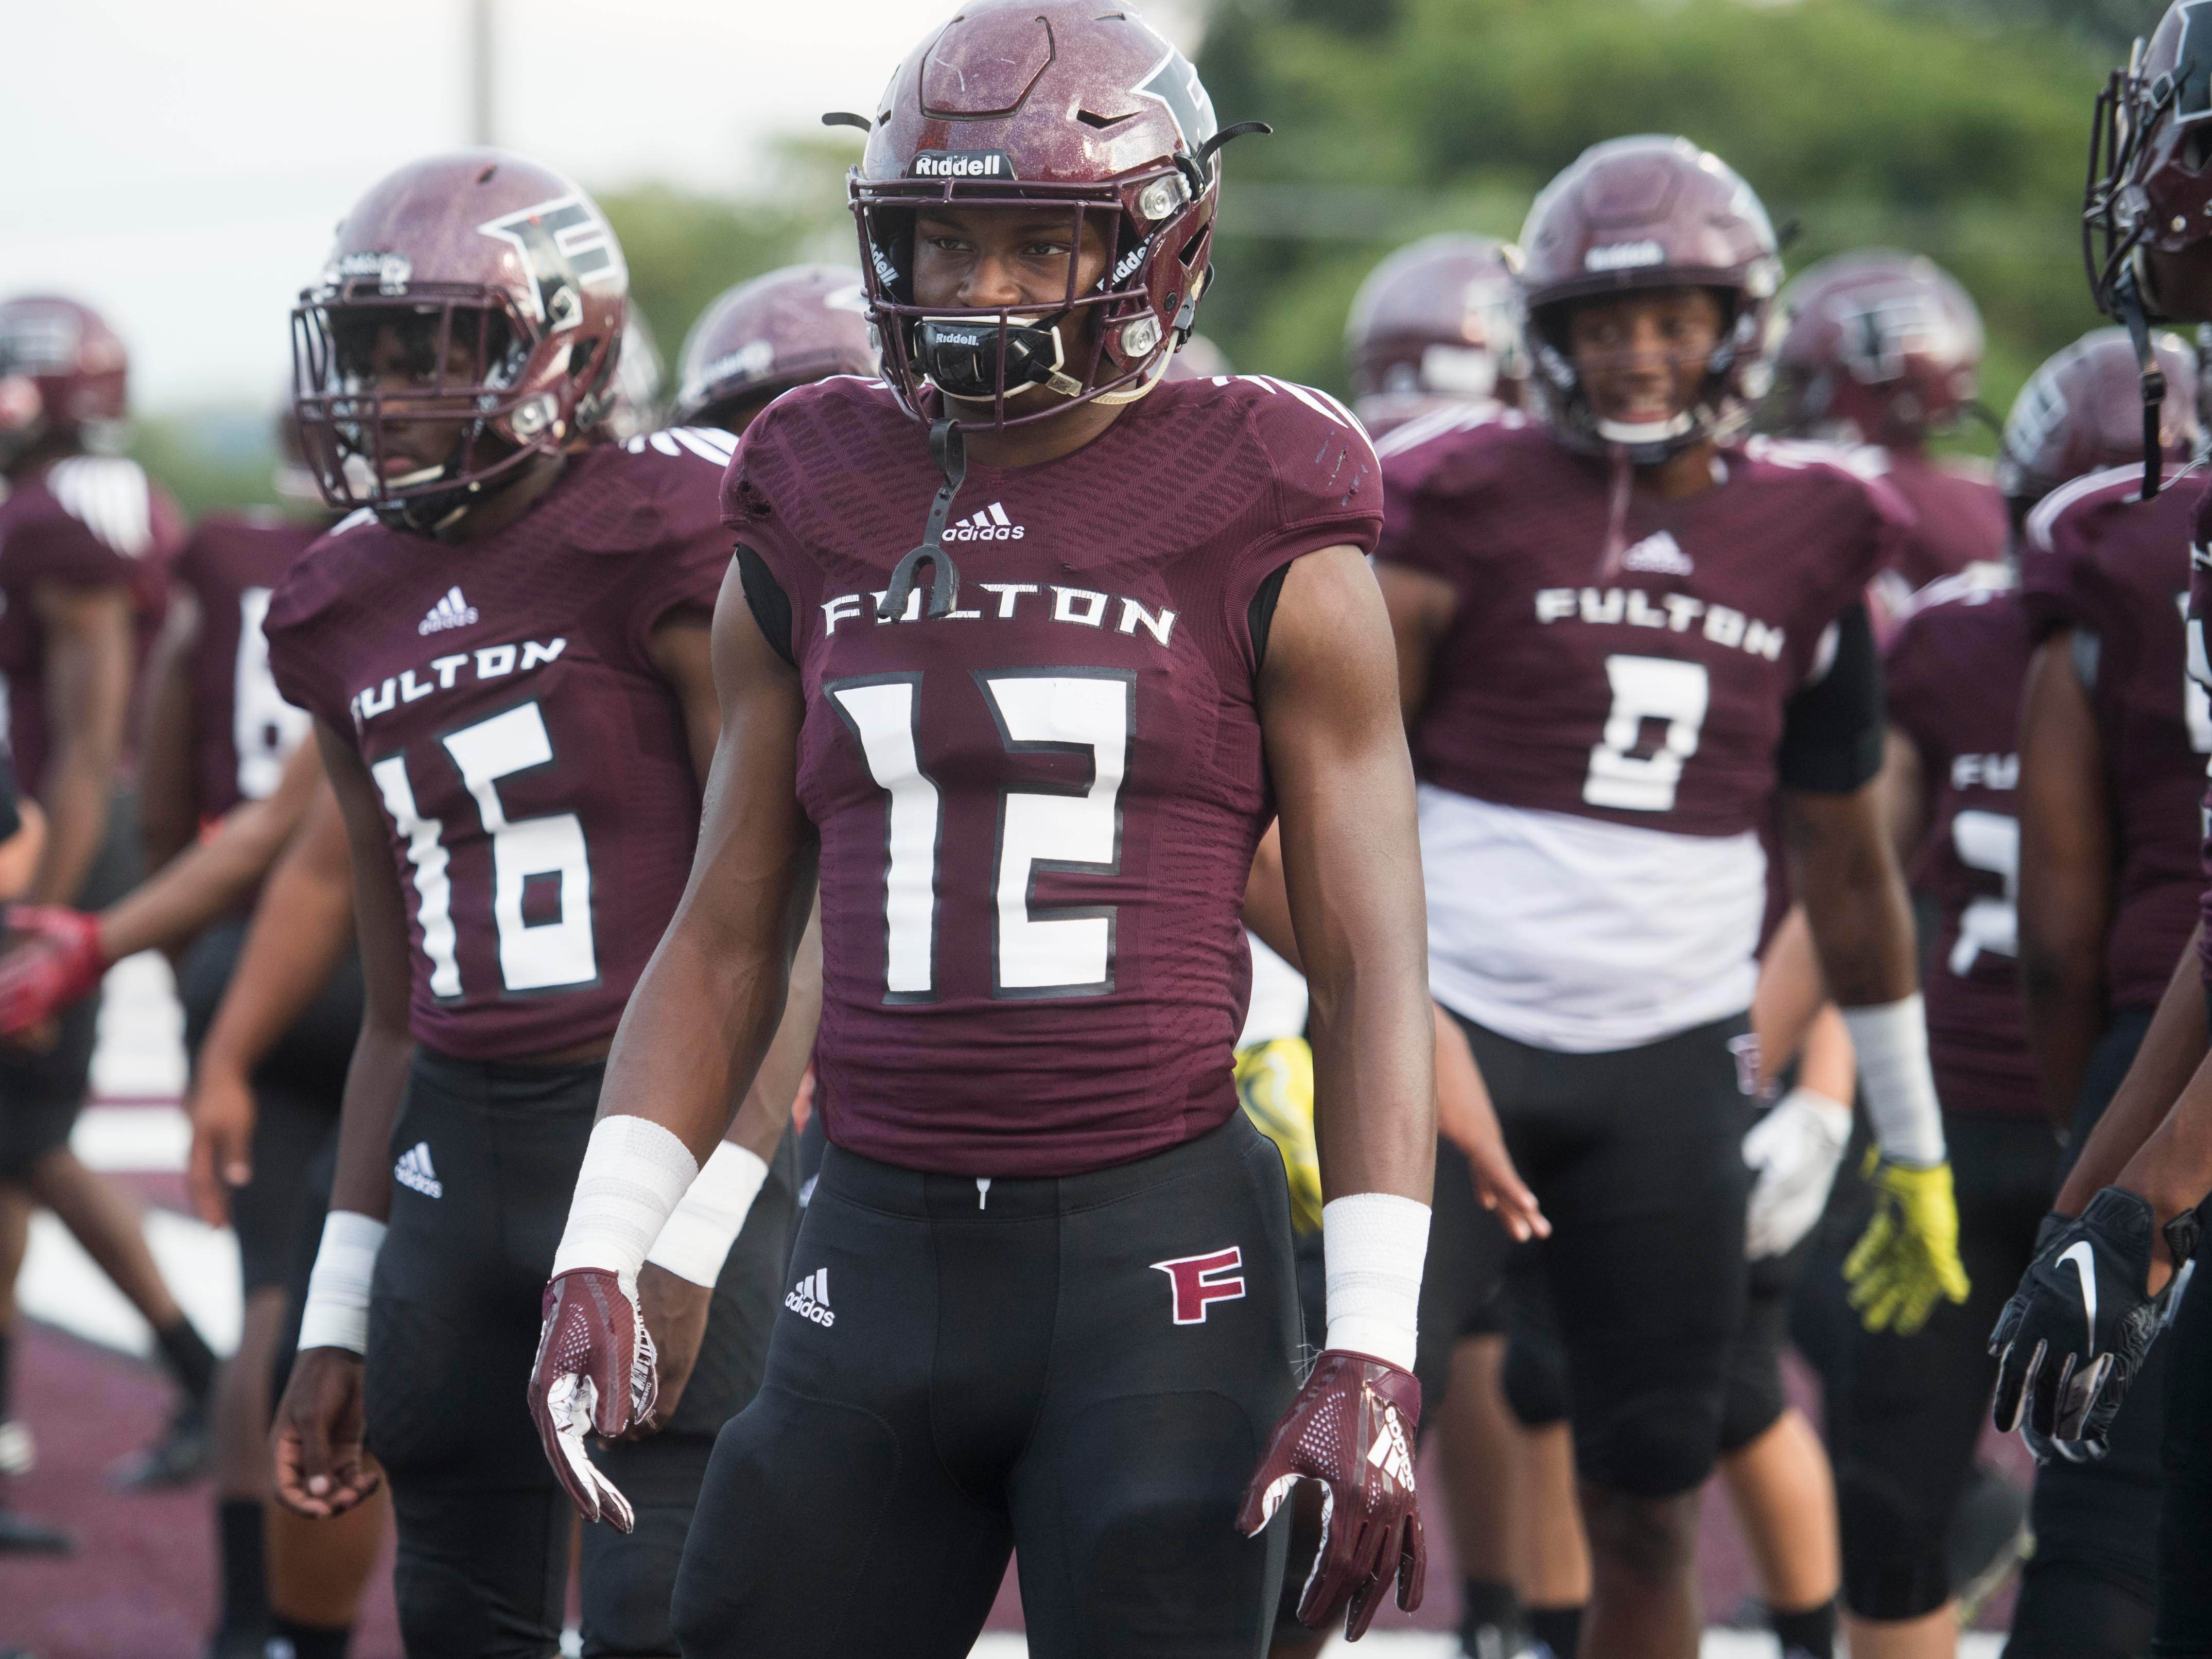 Fulton players gather for the start of the football game against Maryville on Friday, September 21, 2018.